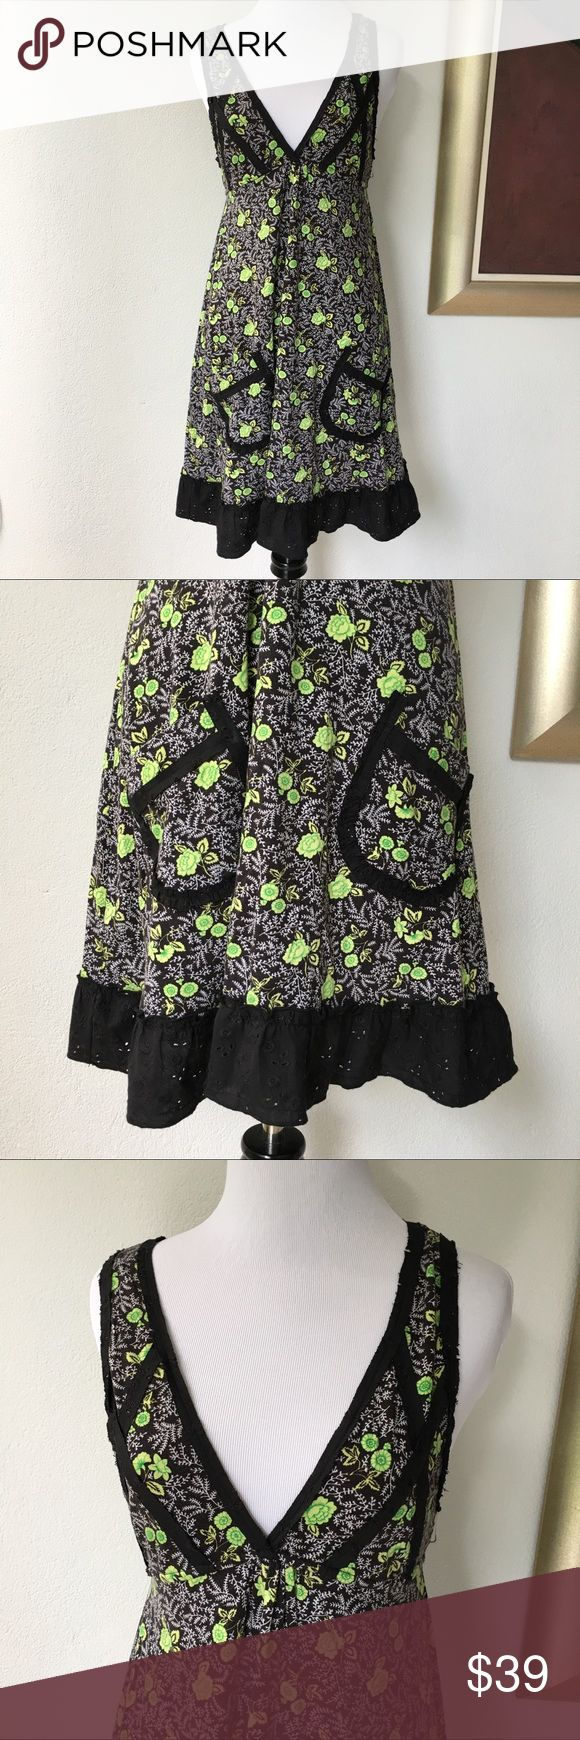 """Free People Floral Black White V Neck Dress XS Preowned authentic Free People Floral Black White V Neck Dress size XS. Armpit to armpit is 15"""" inches. Collar to hem is 32"""" inches. Please look at pictures for better reference. Happy shopping! T7 Free People Dresses"""